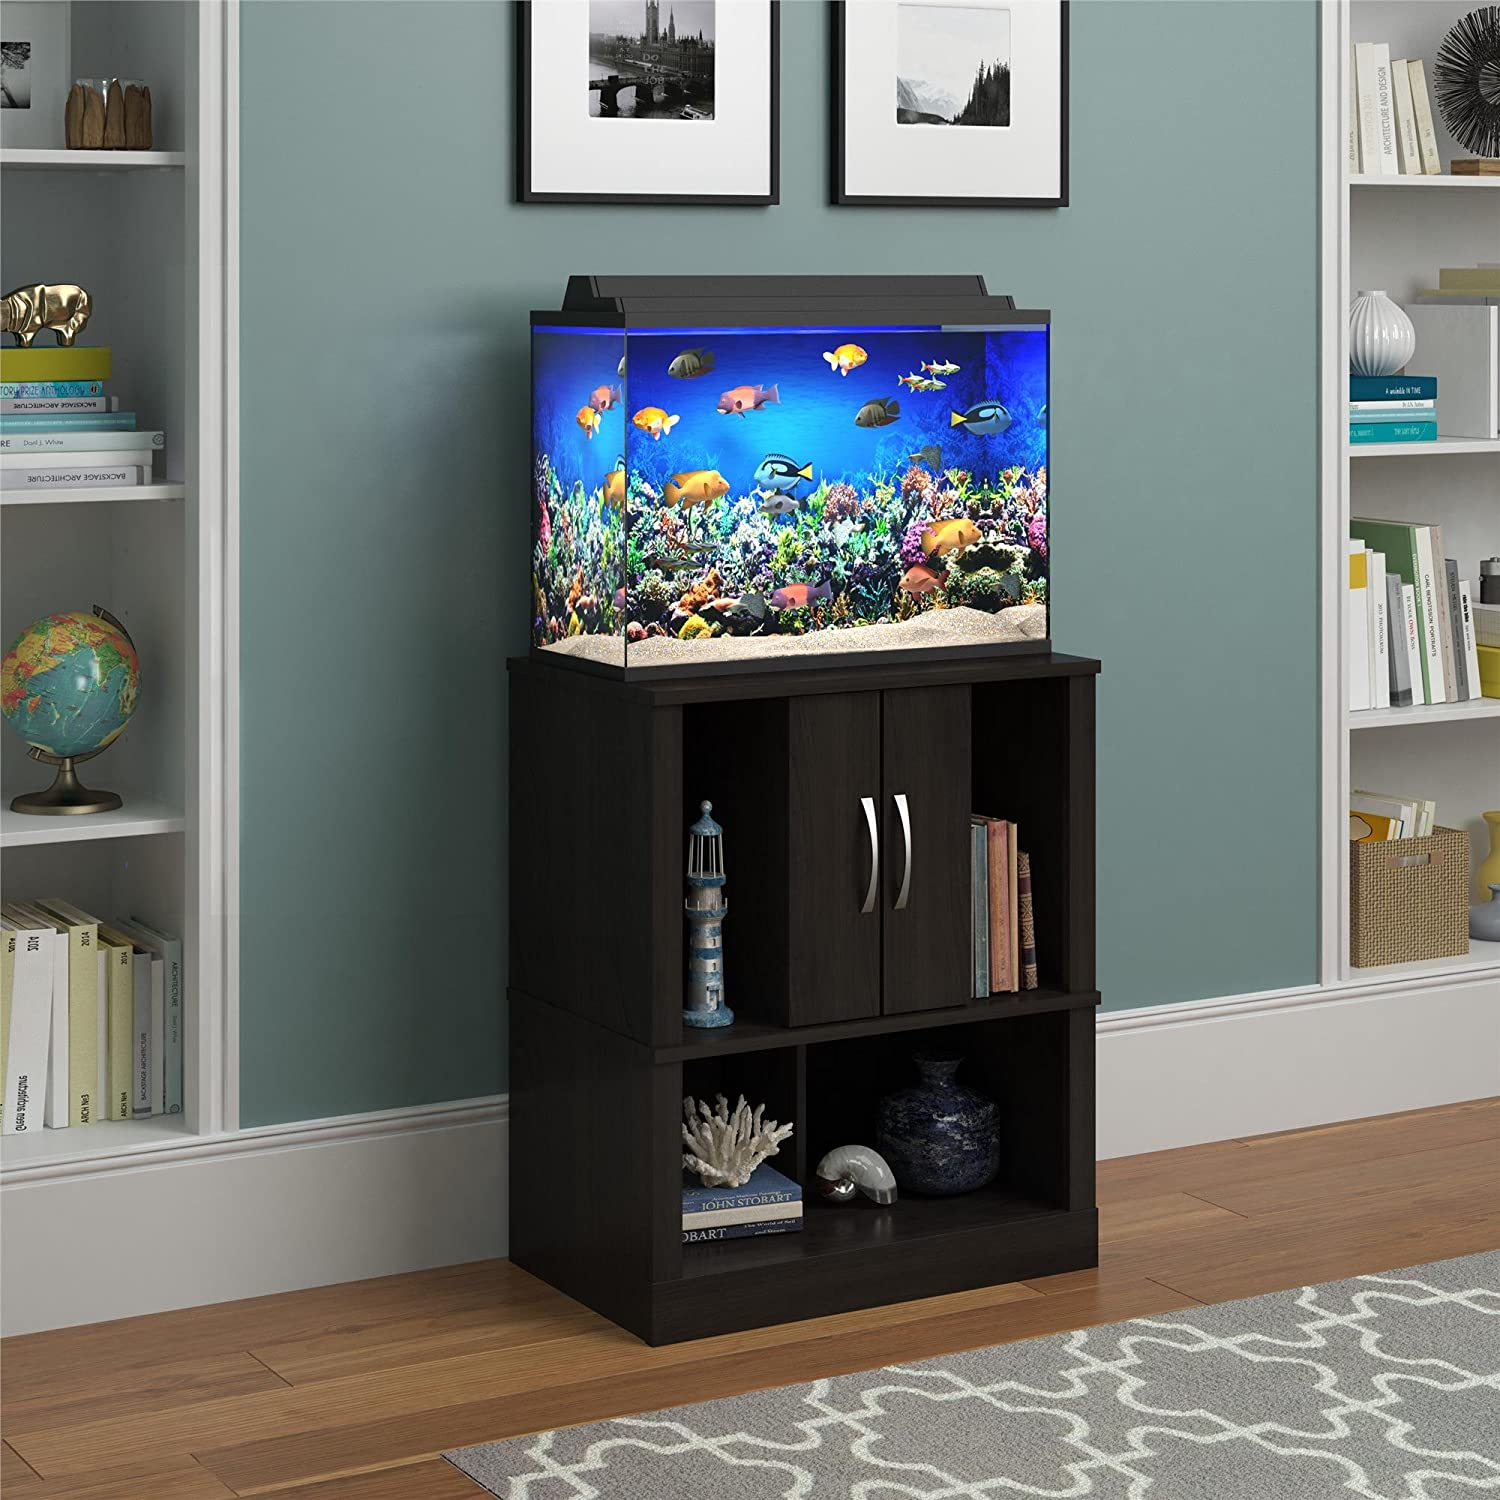 Amazon.com : Ameriwood Home Cove 20 Gallon Aquarium Stand, Espresso : Pet  Supplies